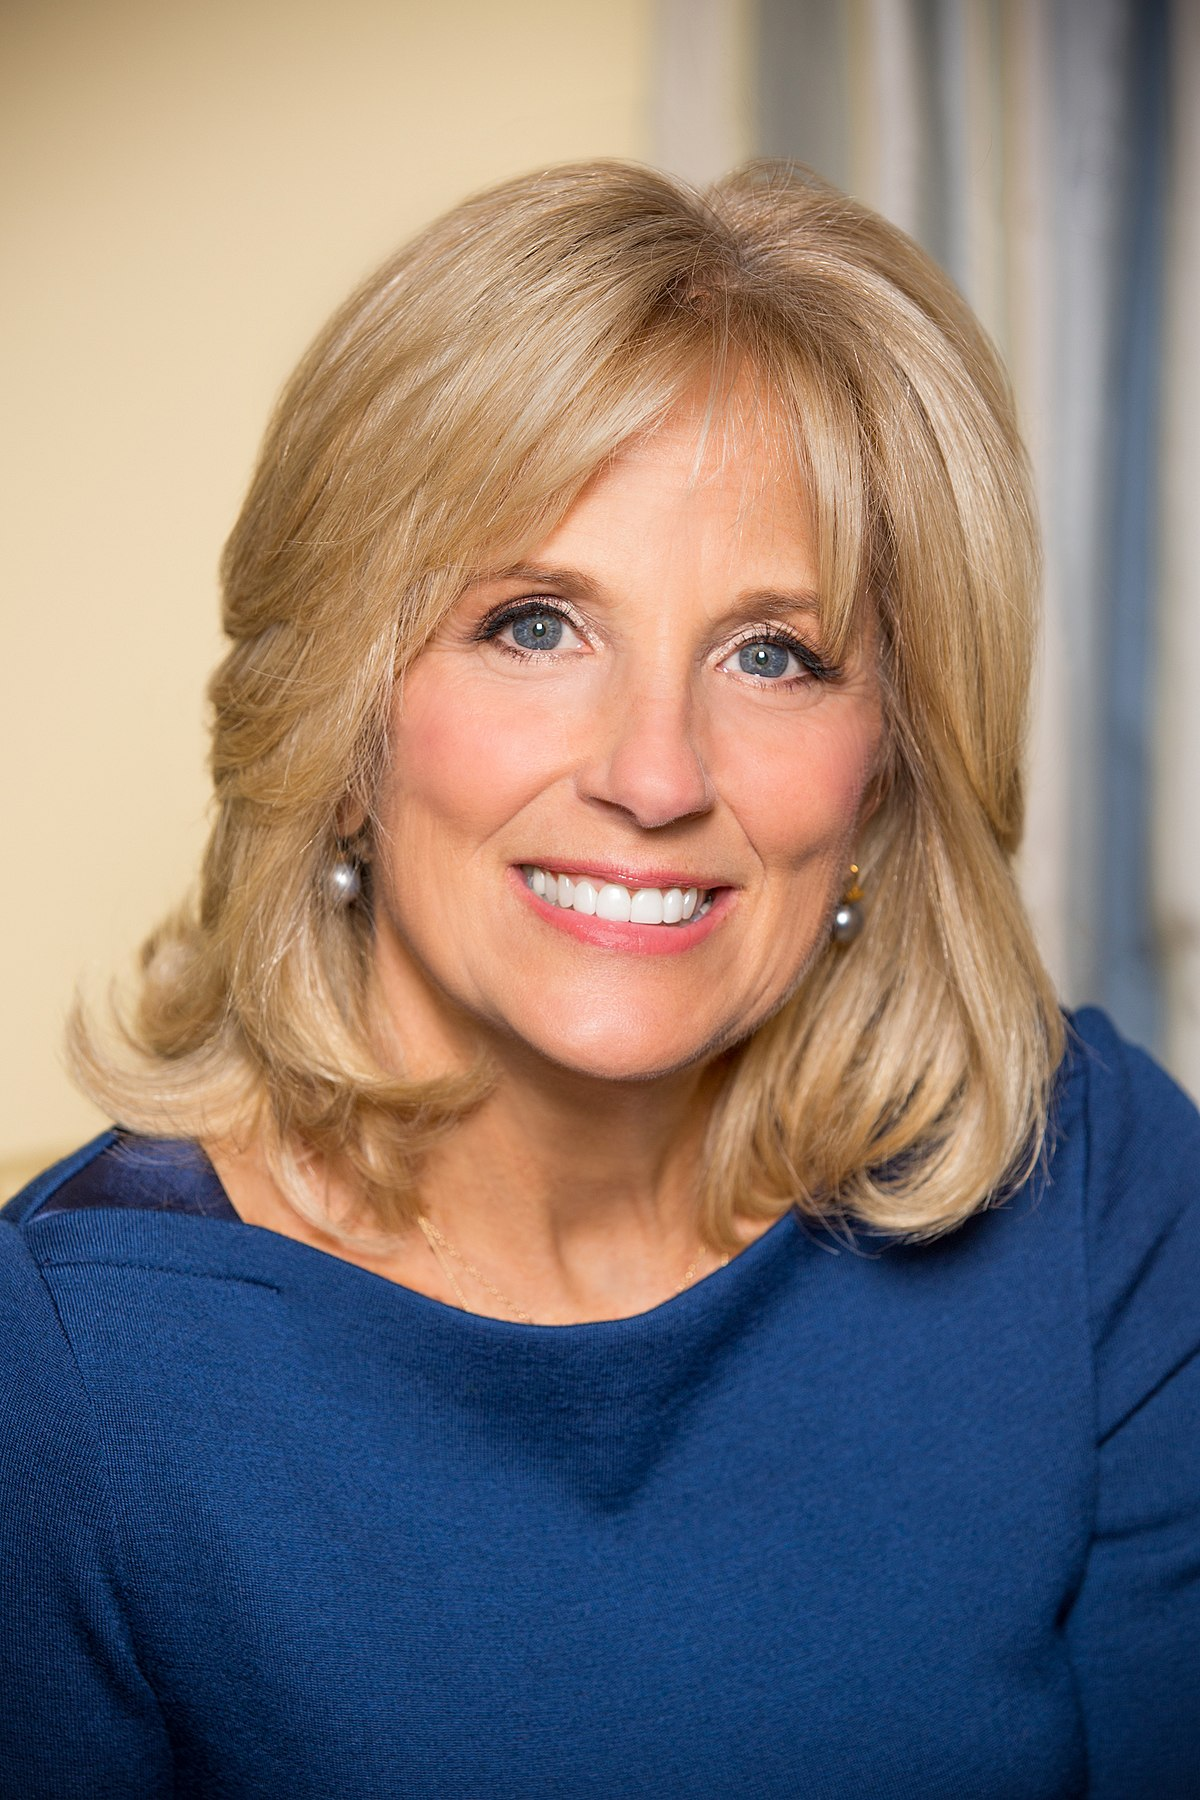 Jill Biden Wikipedia With their father's constant care and attention. jill biden wikipedia